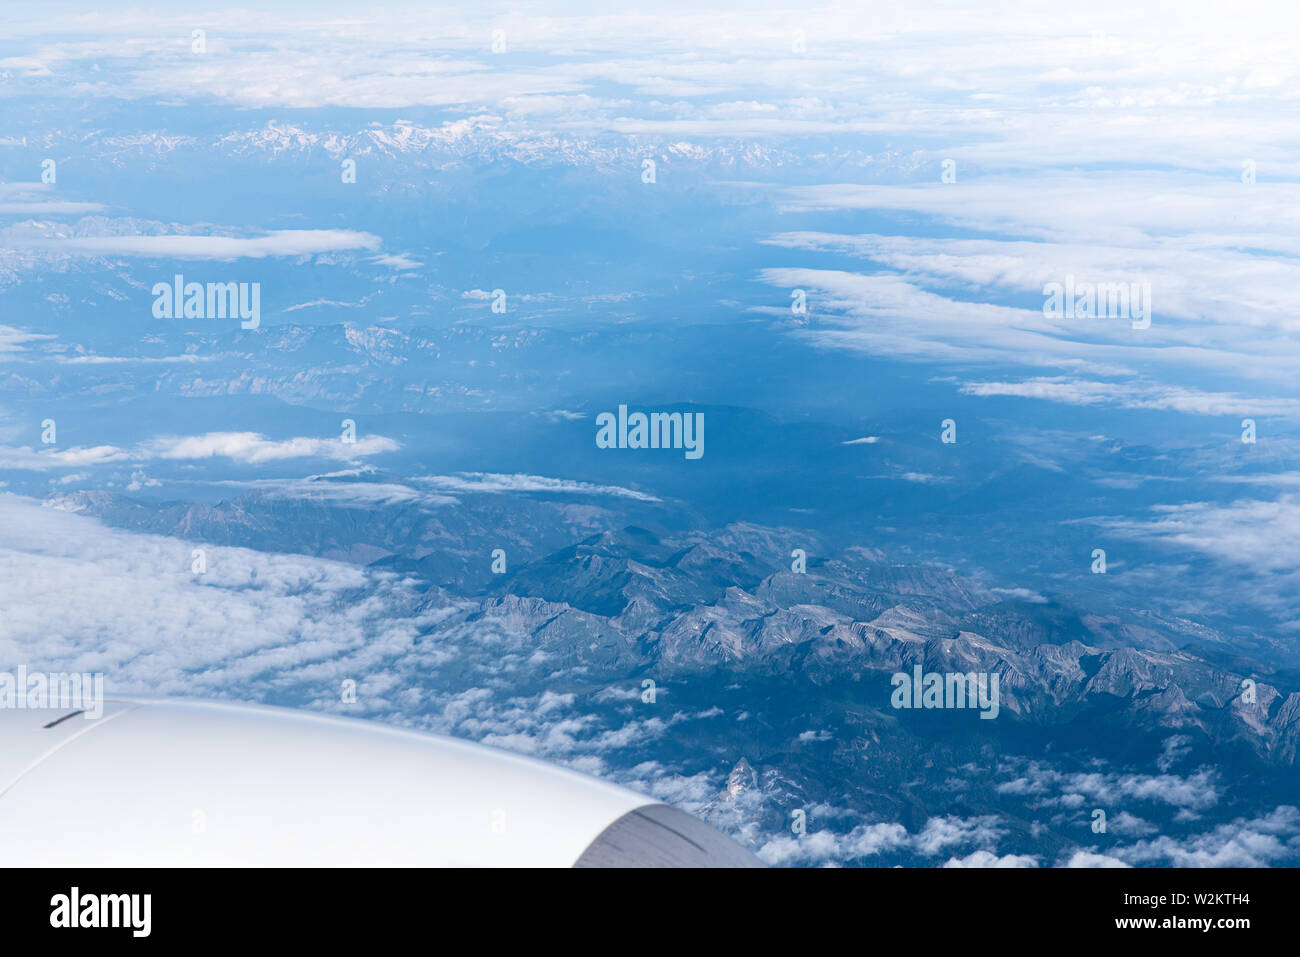 Endless cloudy sky, view from the airplane. Airline theme, travel and business trip by plane Stock Photo